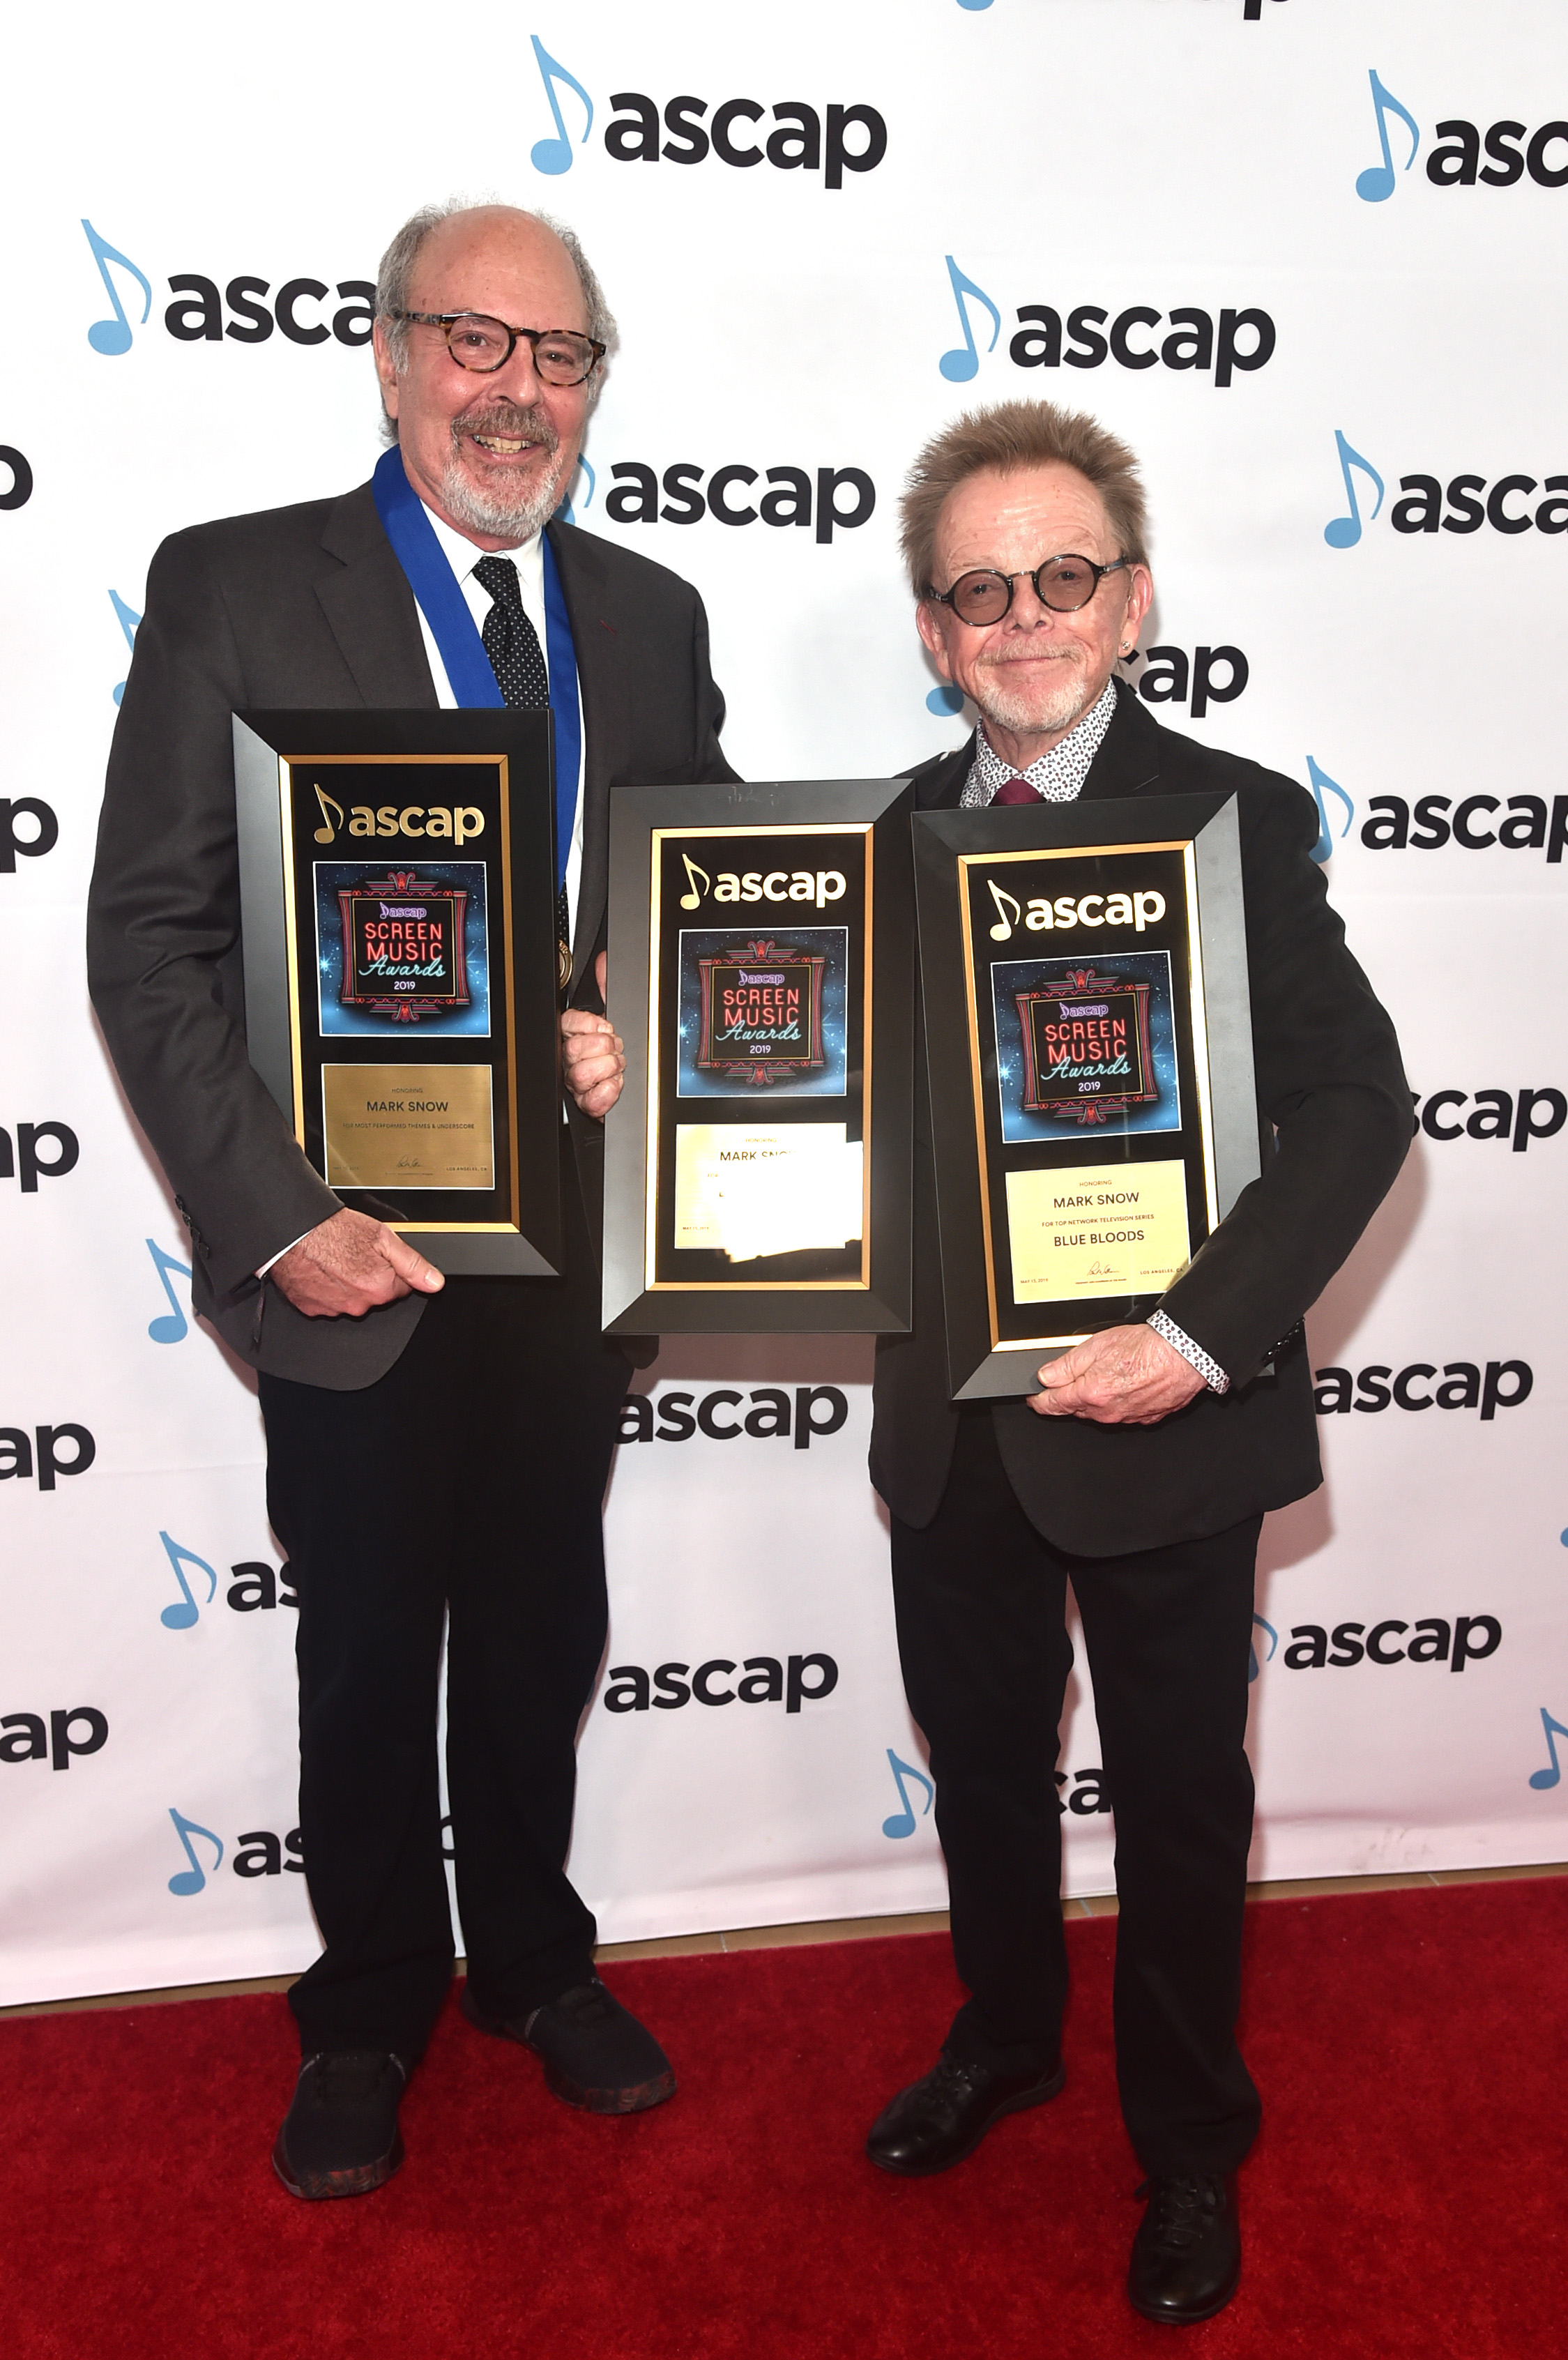 BEVERLY HILLS, CALIFORNIA - MAY 15: Composer Mark Snow (L) winner of the award for Top Network Television Series 'Blue Bloods' and the award for Most Performed Themes and Underscores and ASCAP President and Chairman of the Board Paul Williams attend the ASCAP 2019 Screen Music Awards at The Beverly Hilton Hotel on May 15, 2019 in Beverly Hills, California. (Photo by Alberto E. Rodriguez/Getty Images for ASCAP)